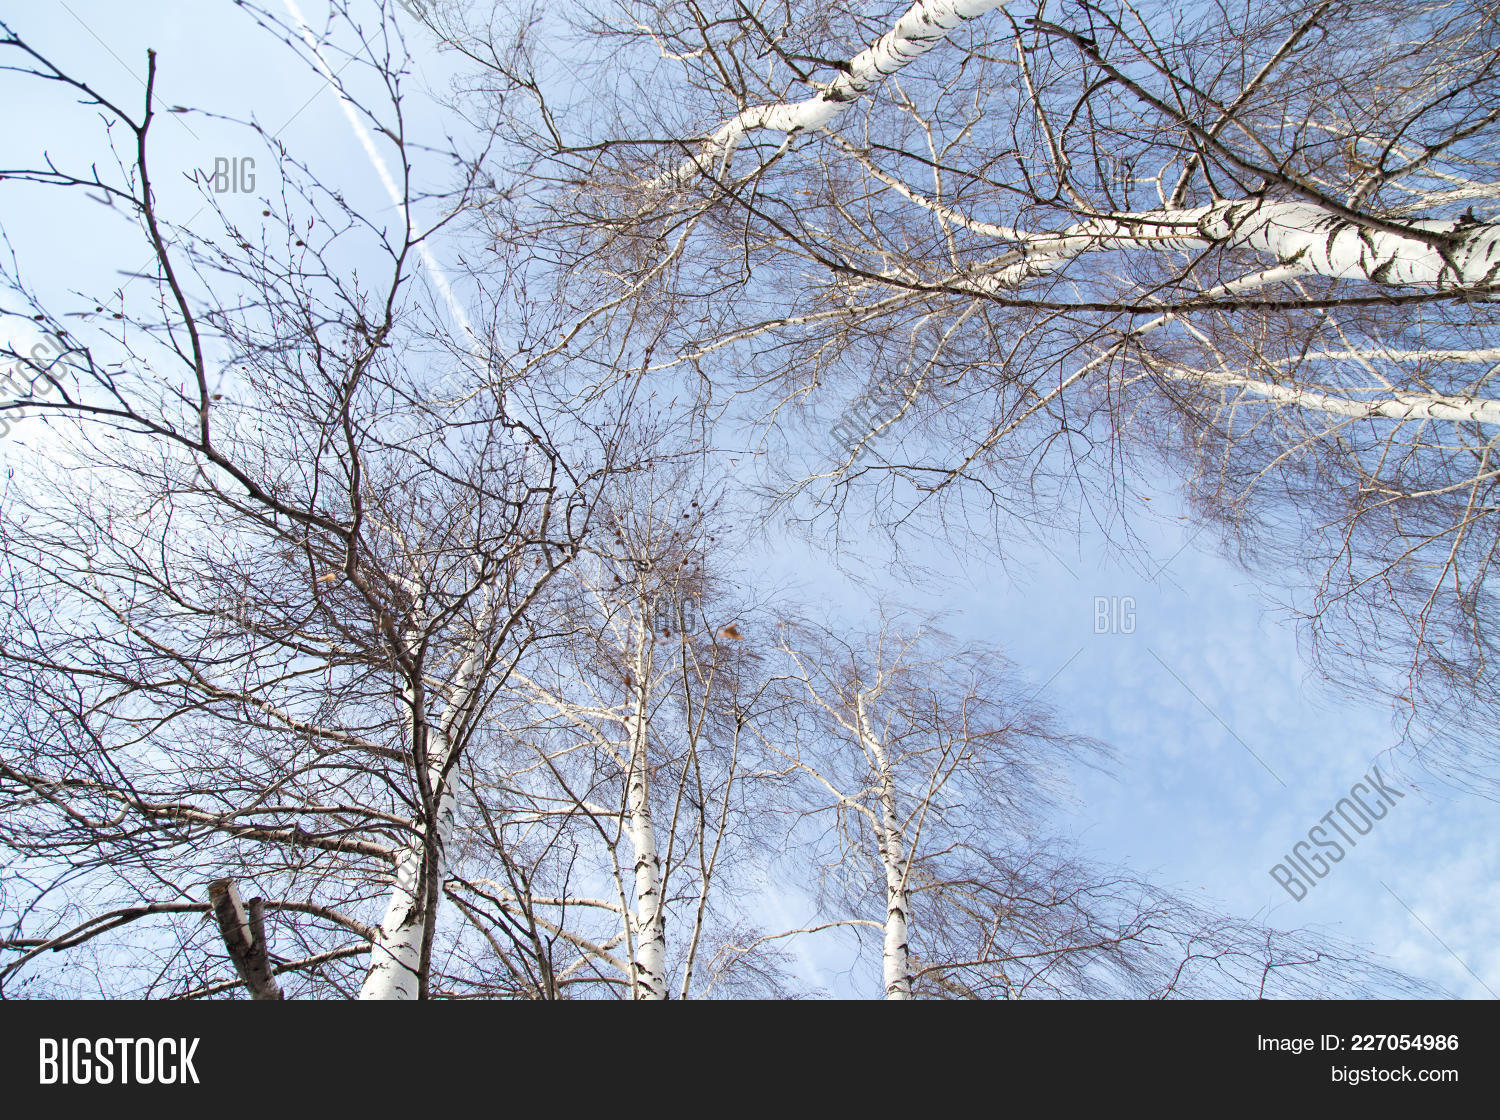 against,bare,bark,beauty,big,birch,blue,branch,bright,brown,clouds,flora,forest,frame,height,high,landscape,log,lumber,natural,nature,outdoor,outside,photography,plant,scene,scenery,scenic,season,silver,sky,spring,summer,sun,sunshine,tall,texture,thin,timber,tranquil,tree,treetops,twigs,vegetation,white,winter,wood